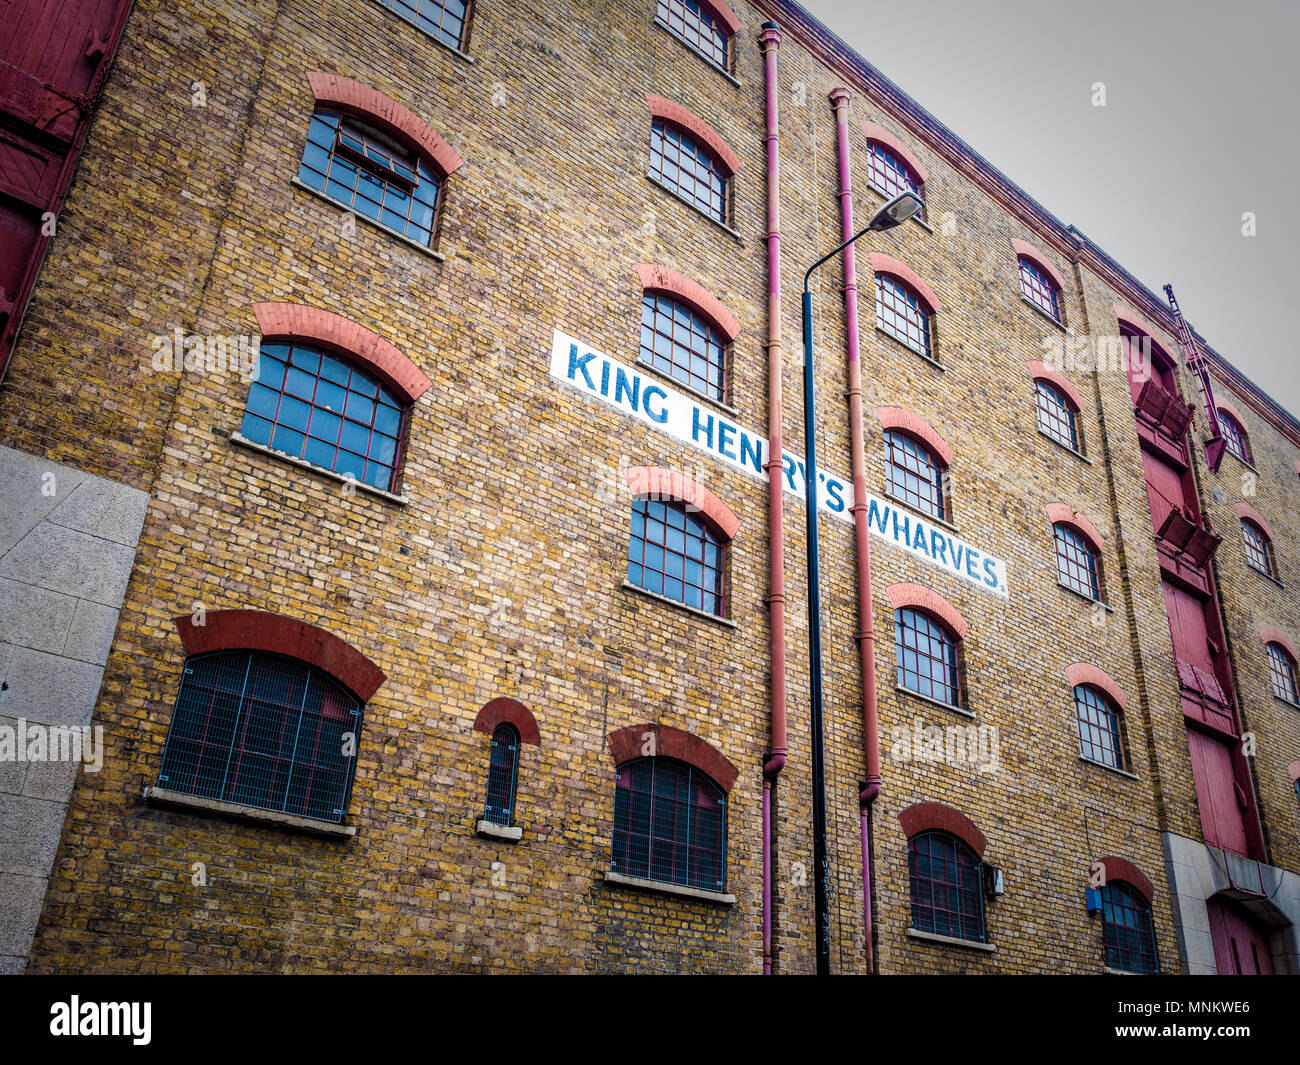 King Henry's Wharves, Grade II Listed Building in St Katharine's & Wapping, London, UK. - Stock Image